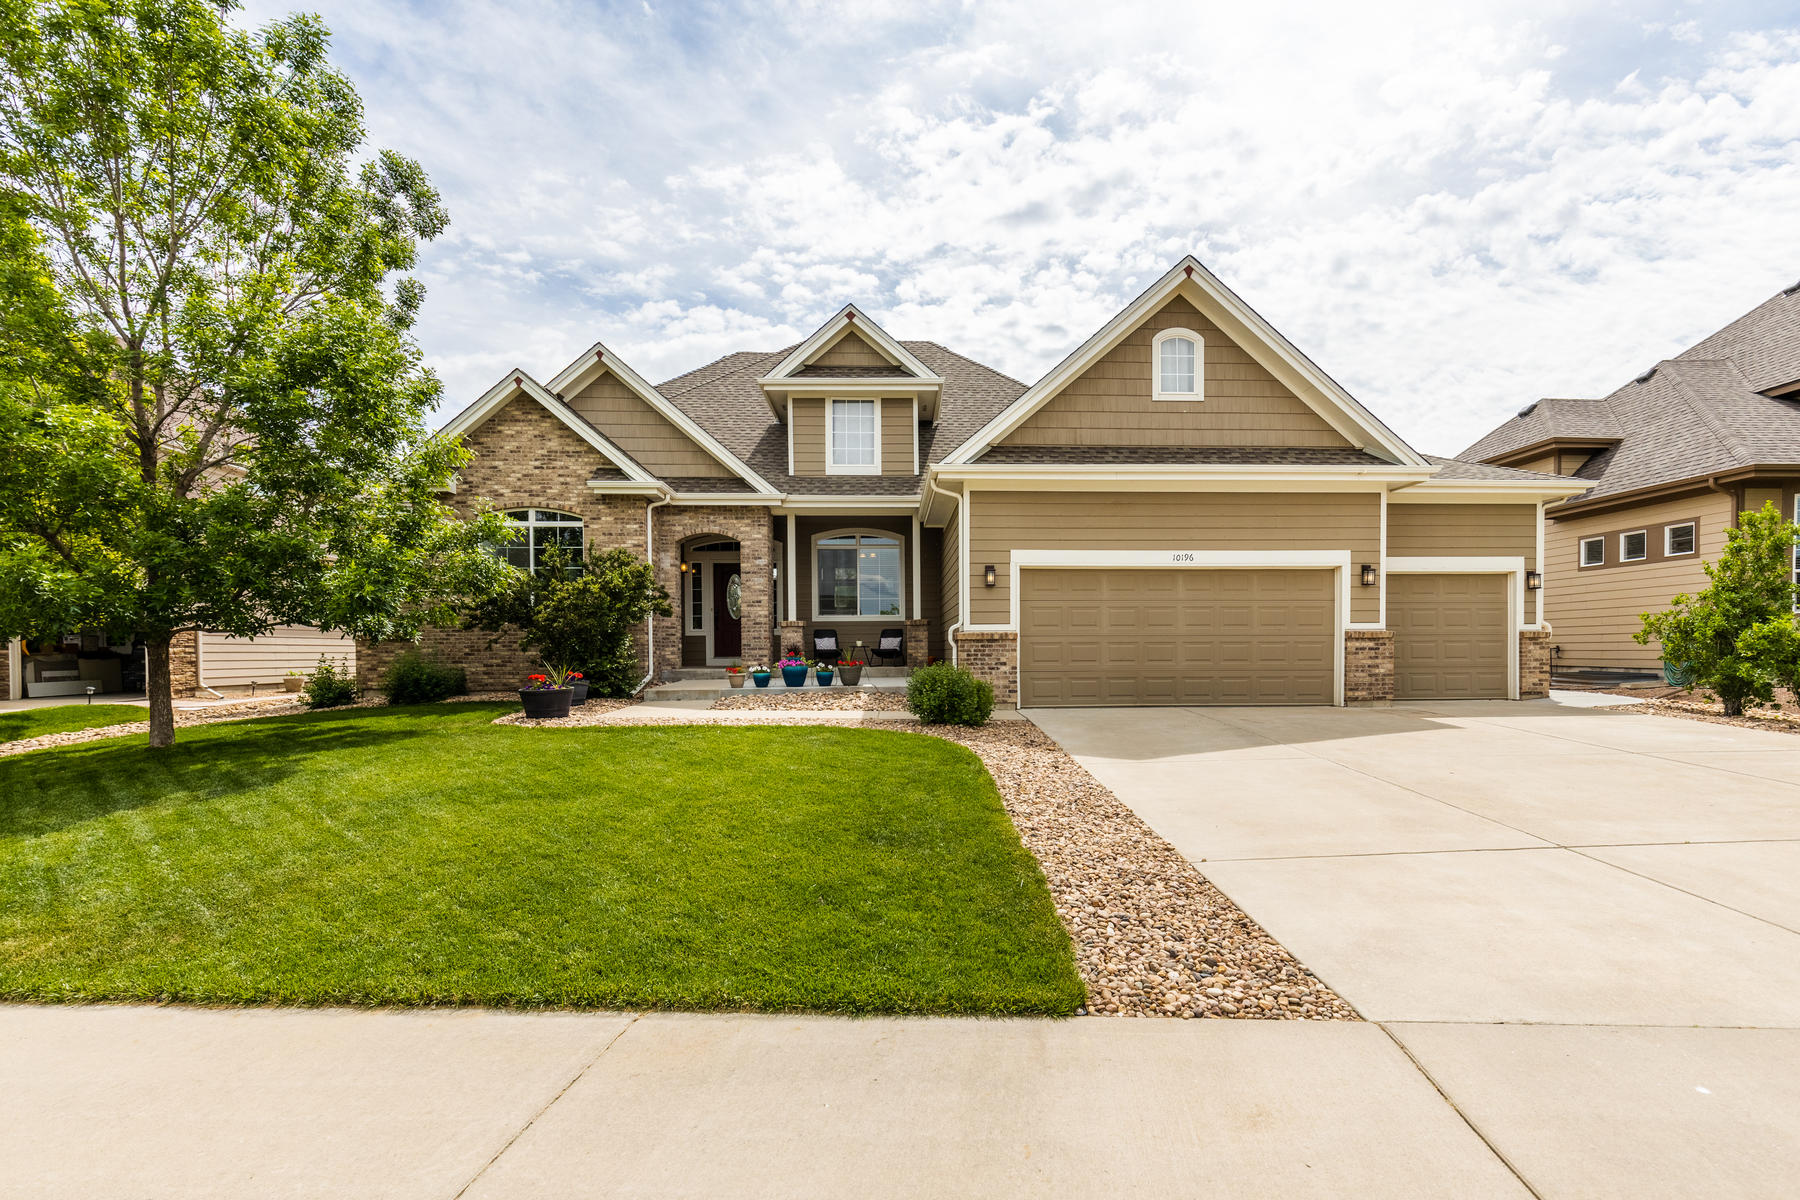 Single Family Homes for Sale at Absolutely Beautiful Modern Remodel 10196 Deerfield St Firestone, Colorado 80504 United States